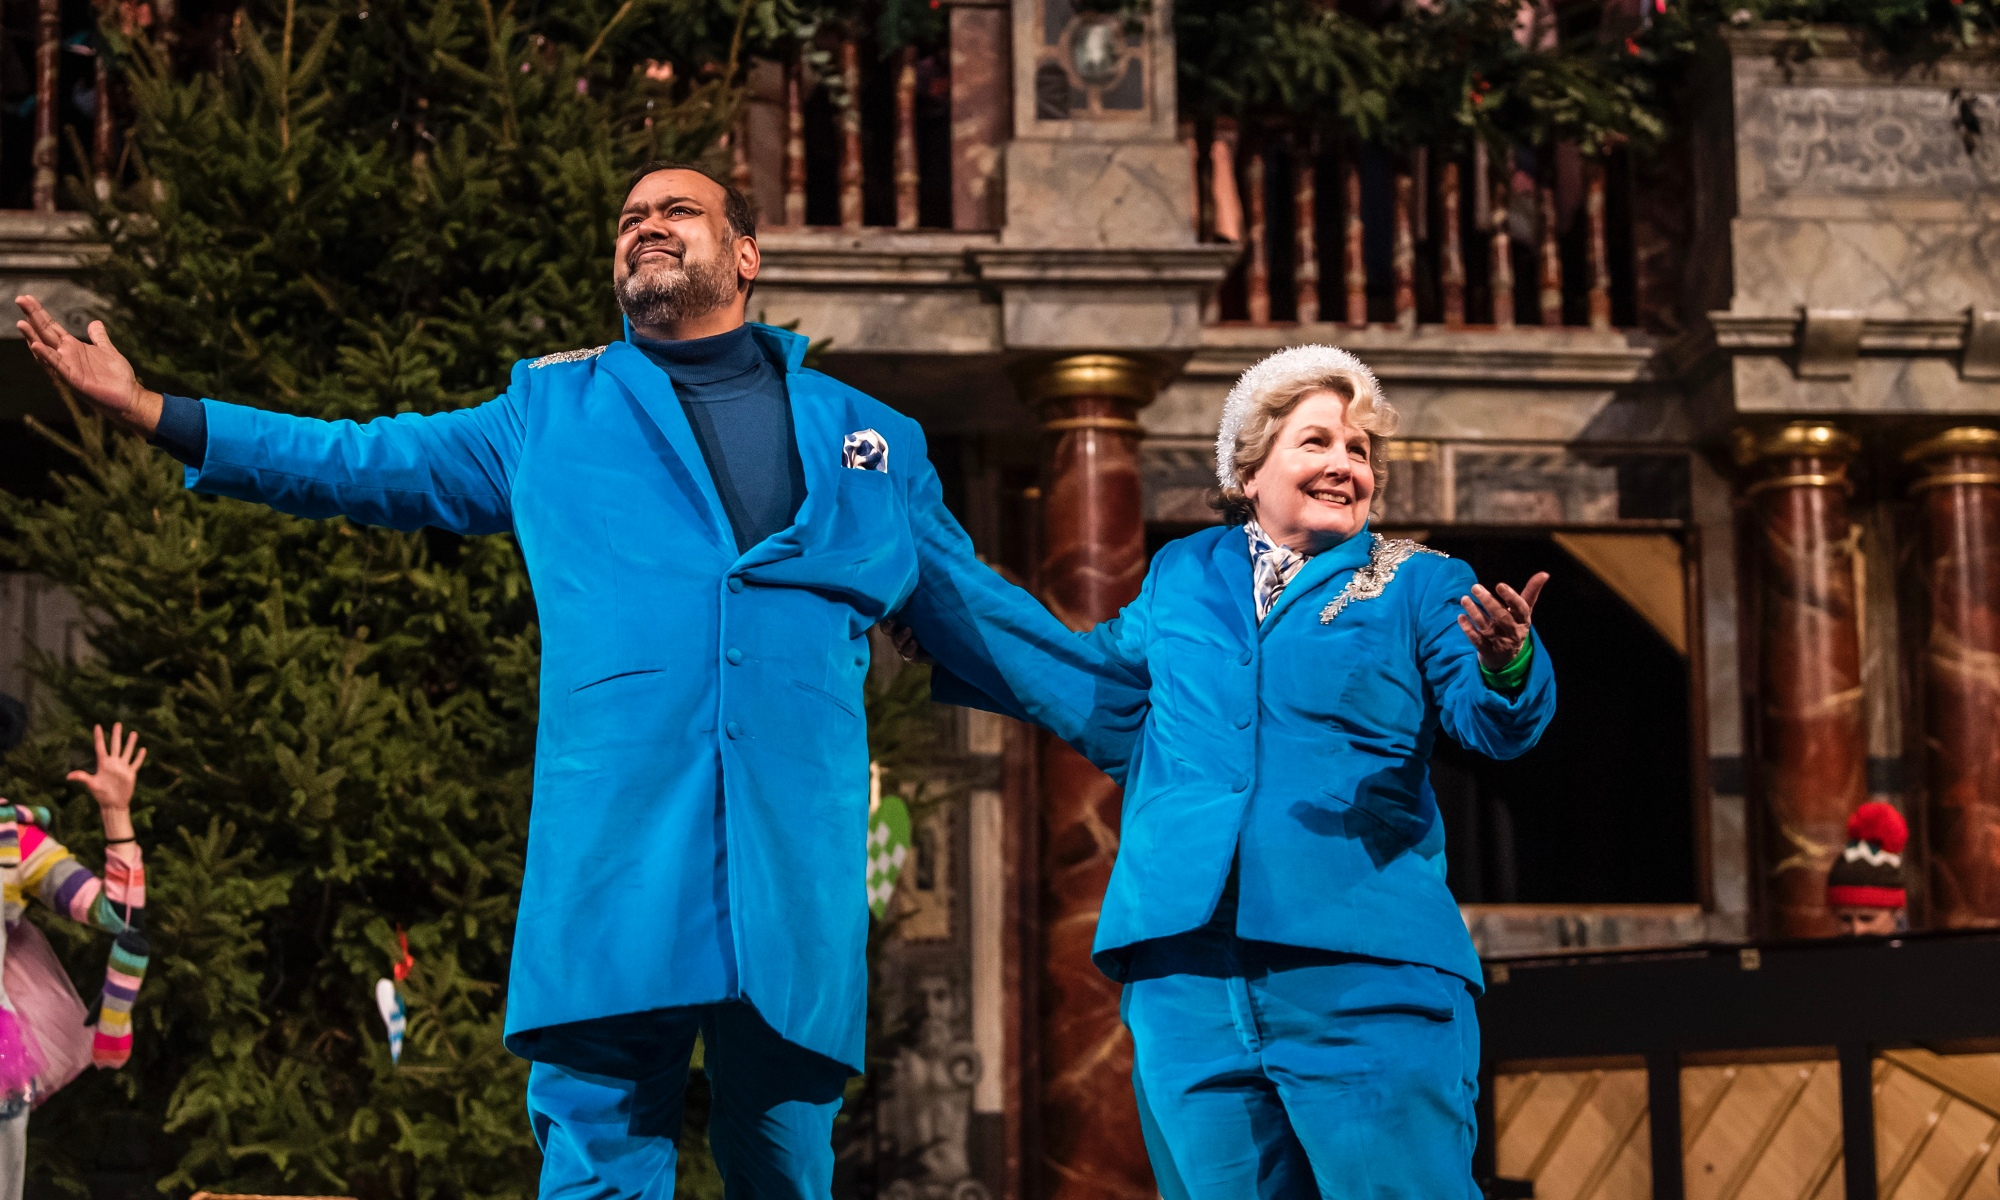 Tony Jayawardena and Sandi Toksvig wearing all blue suits at the Globe. A Christmas tree is on the stage behind them.